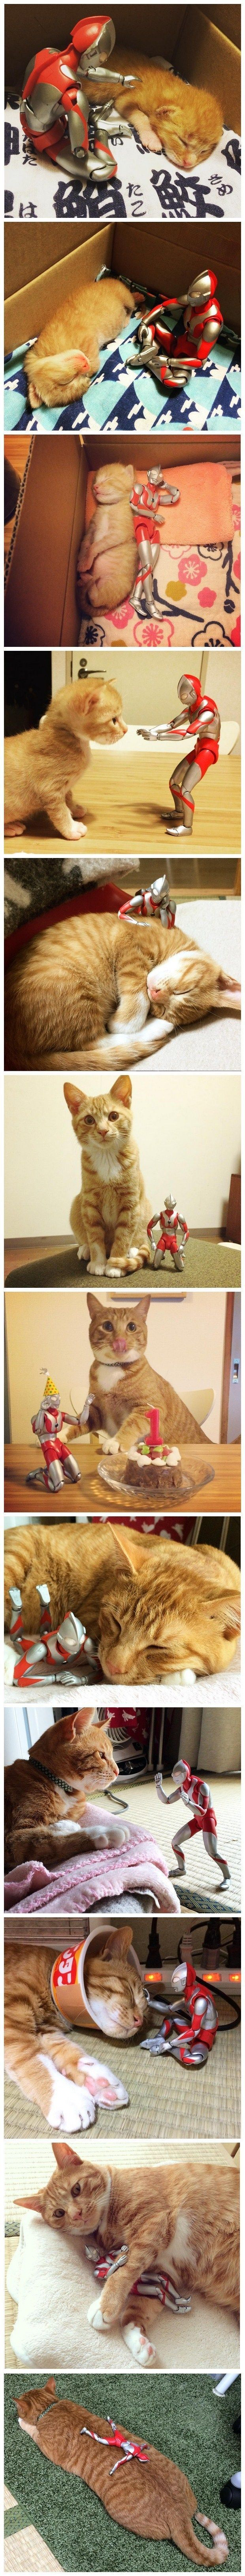 This Cat's Favorite Toy Has Been With Him Since He Was a Baby - I Can Has Cheezburger? - Funny Cats | Funny Pictures | Funny Cat Memes | GIF | Cat GIFs | Dogs | Animal Captions | LOLcats | Have Fun | Funny Memes #animalsandpets